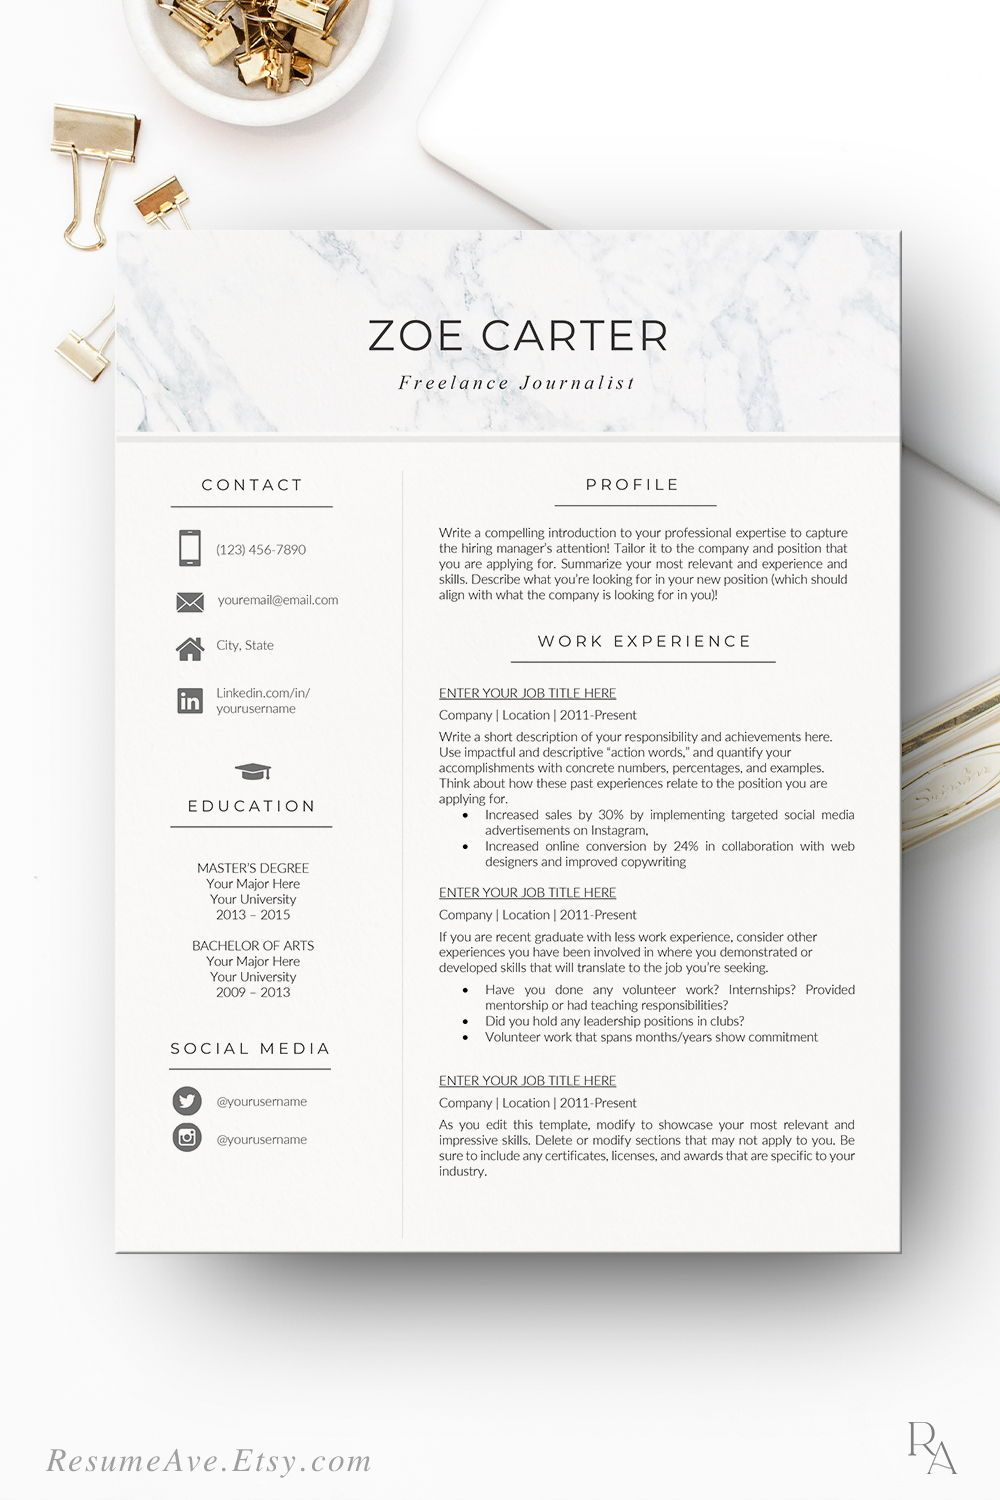 Nurse Resume Template With Marble Header Modern And Creative Etsy In 2021 Executive Resume Template Nursing Resume Template Resume Template Word